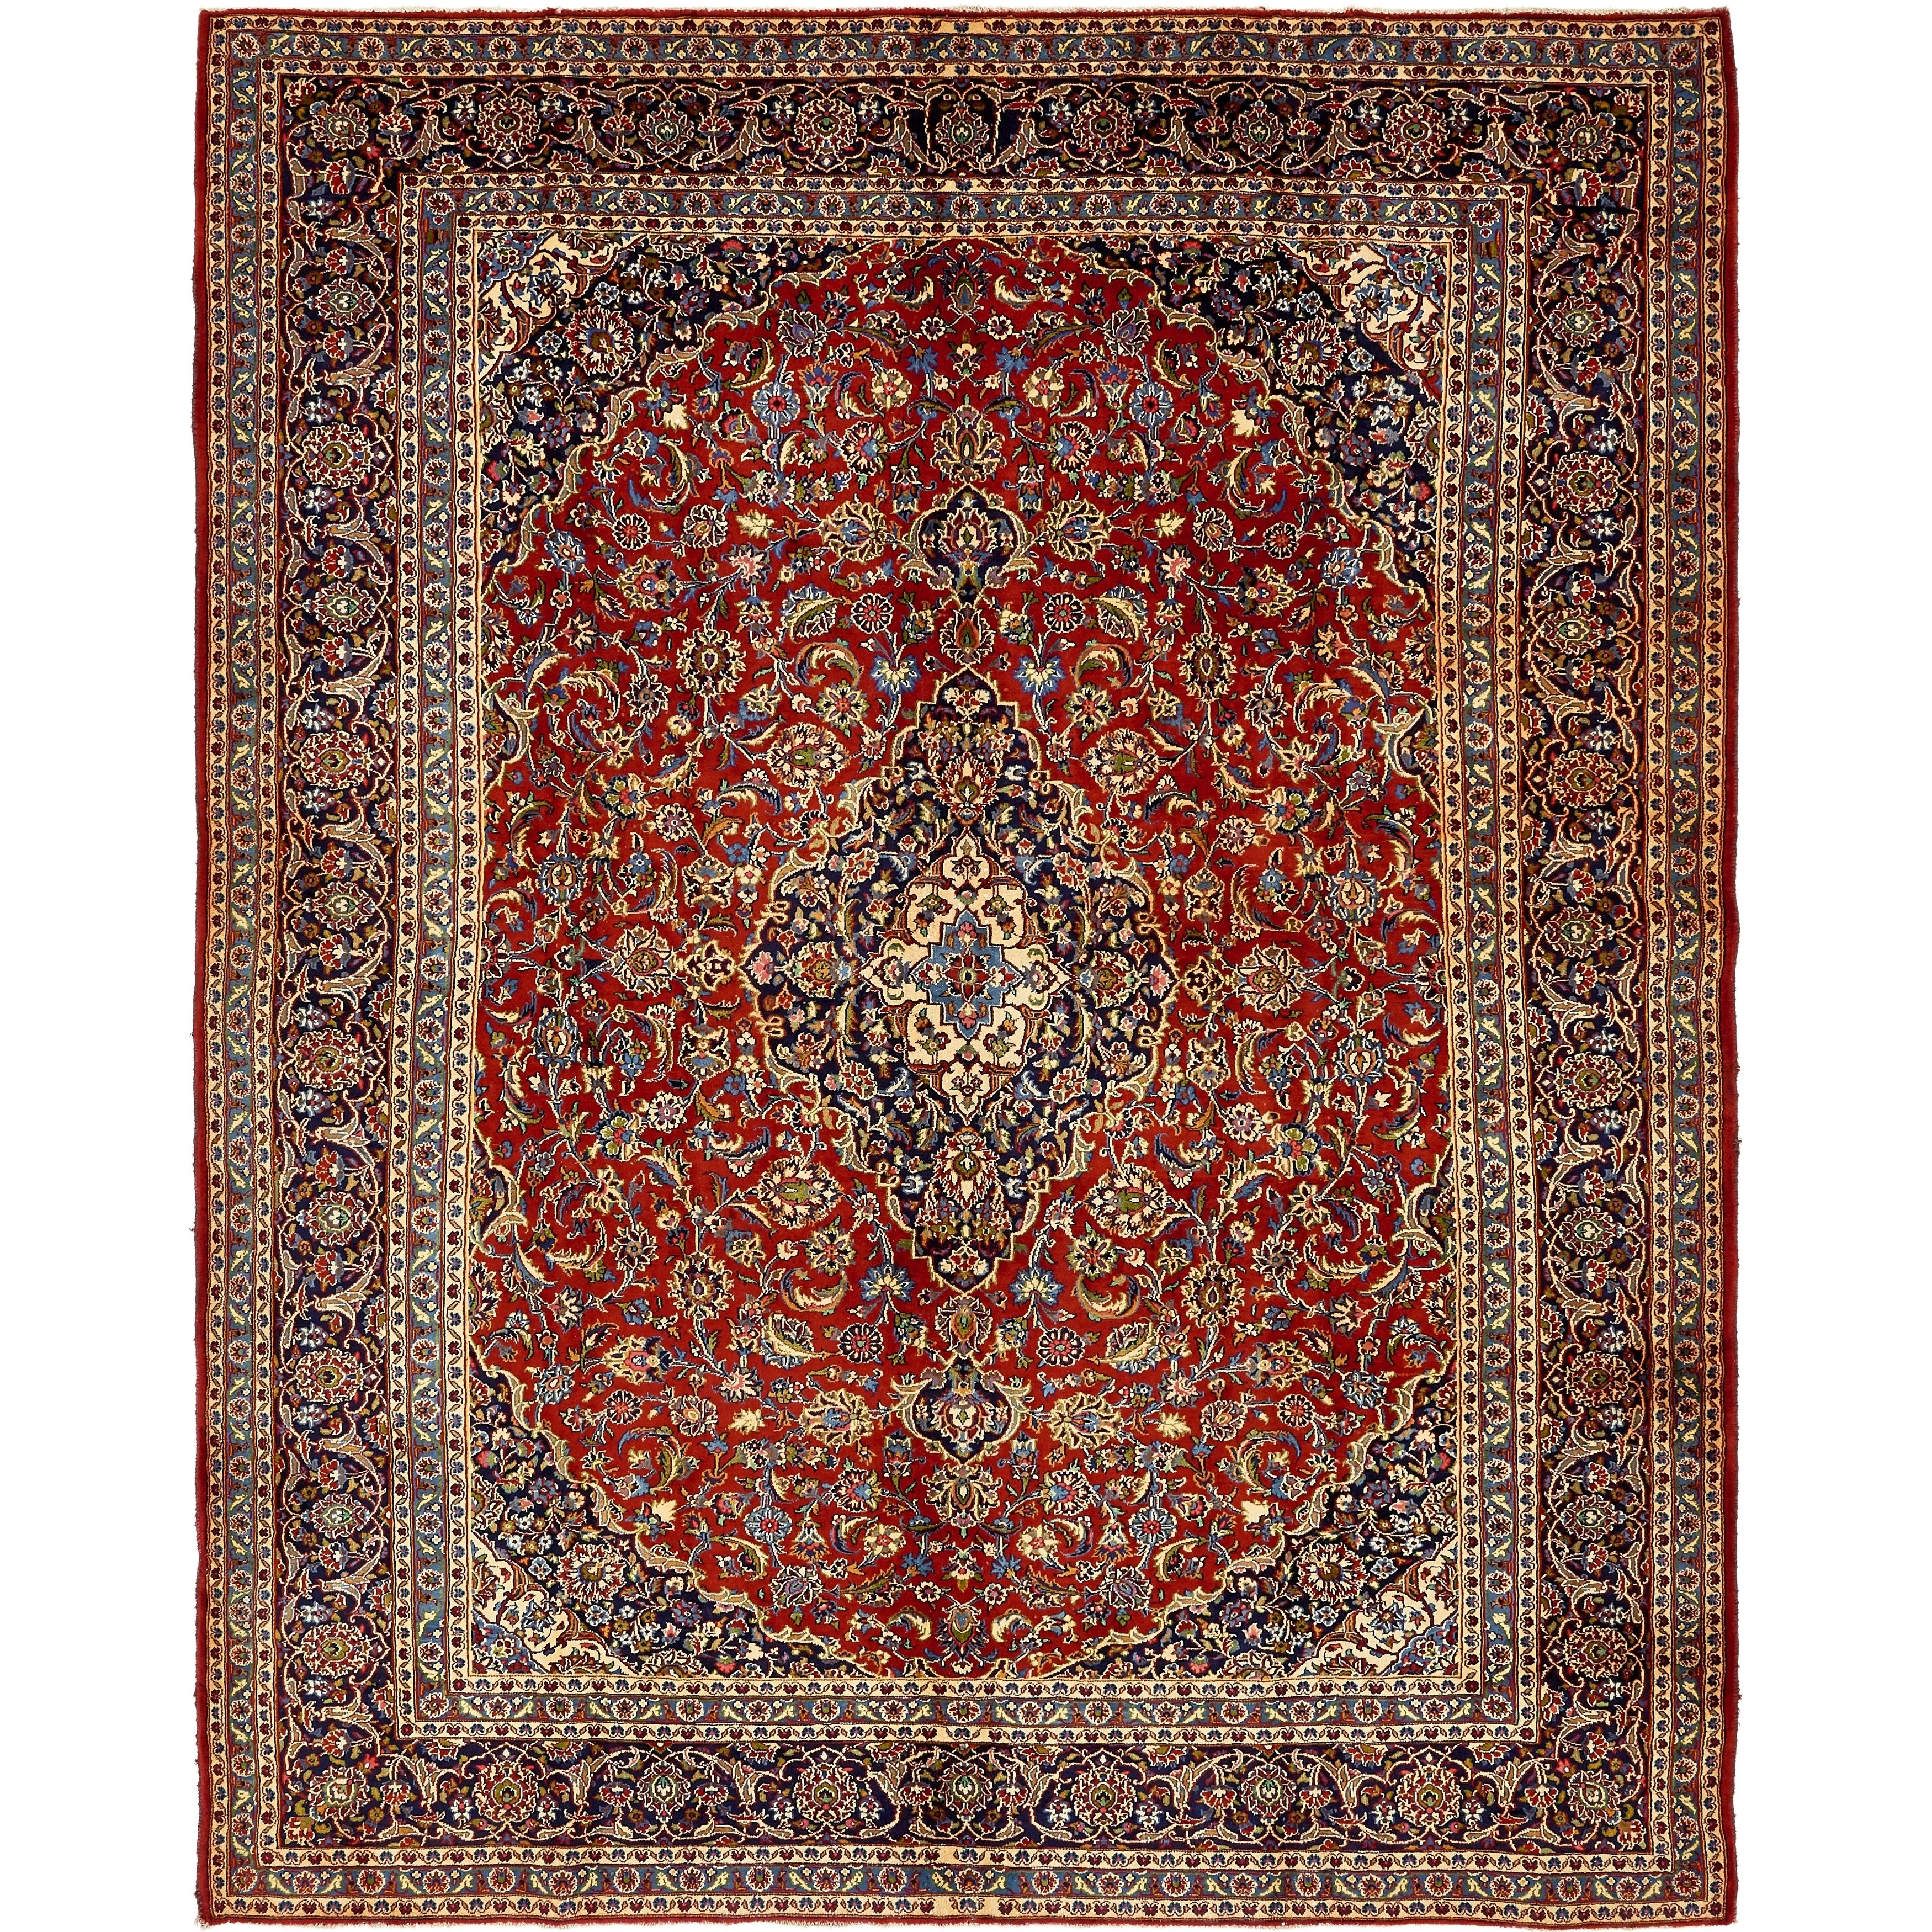 Refurbished Hand Knotted Kashan Semi Antique Wool Area Rug 10 X